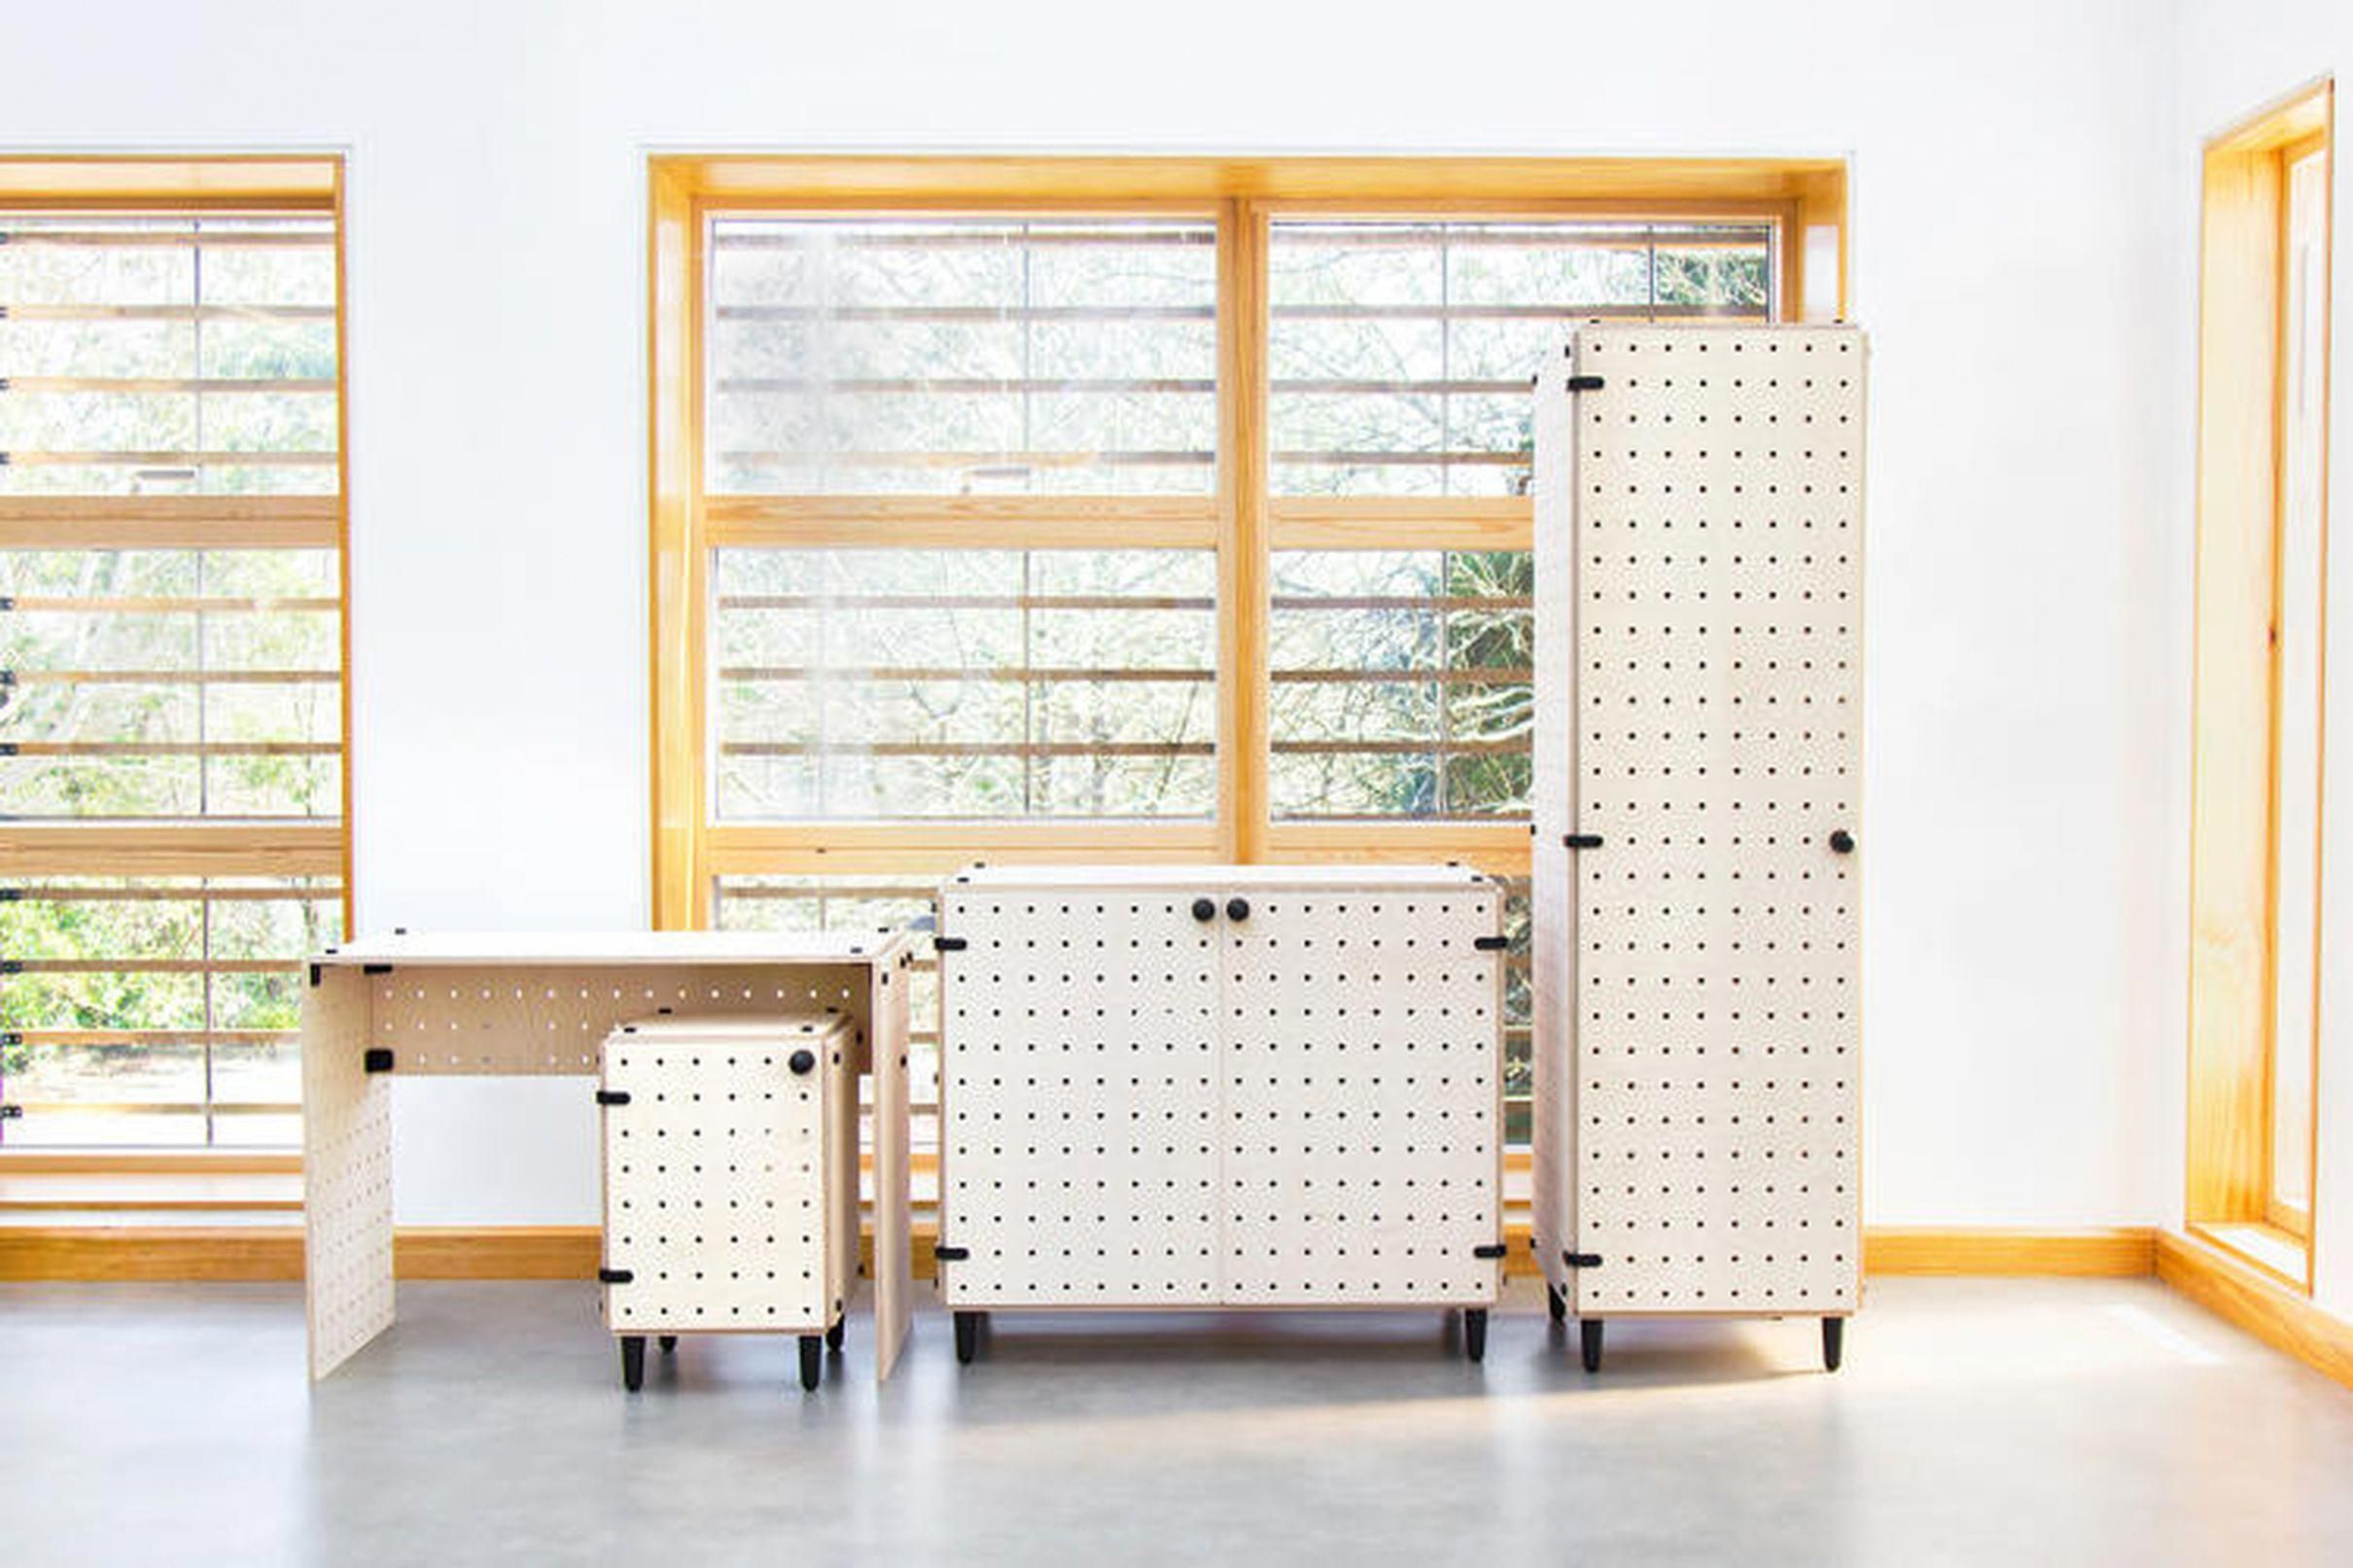 New modular flatpack furniture line assembles without tools